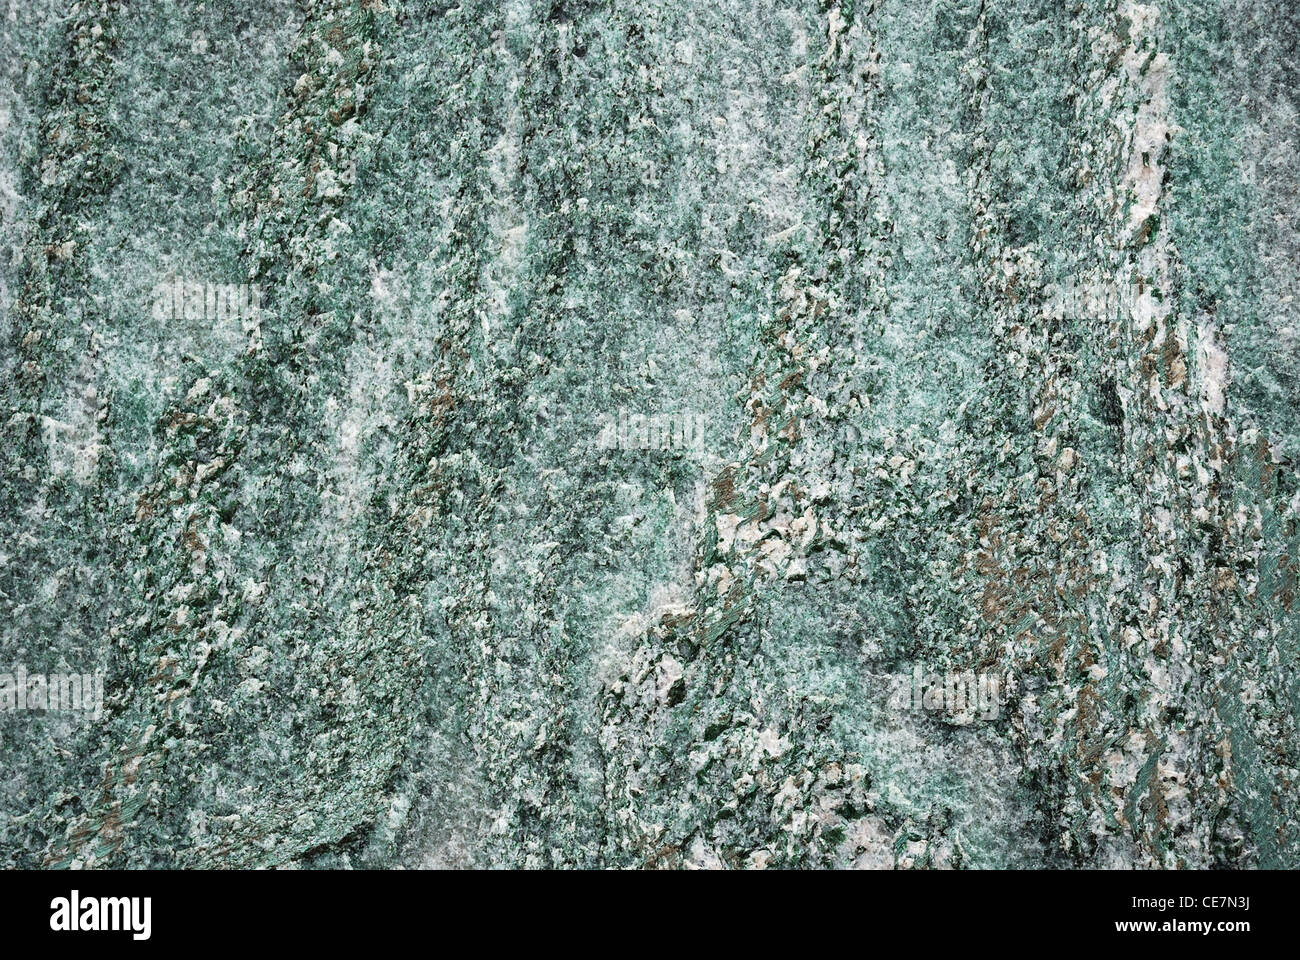 Surface of greenish marble. - Stock Image